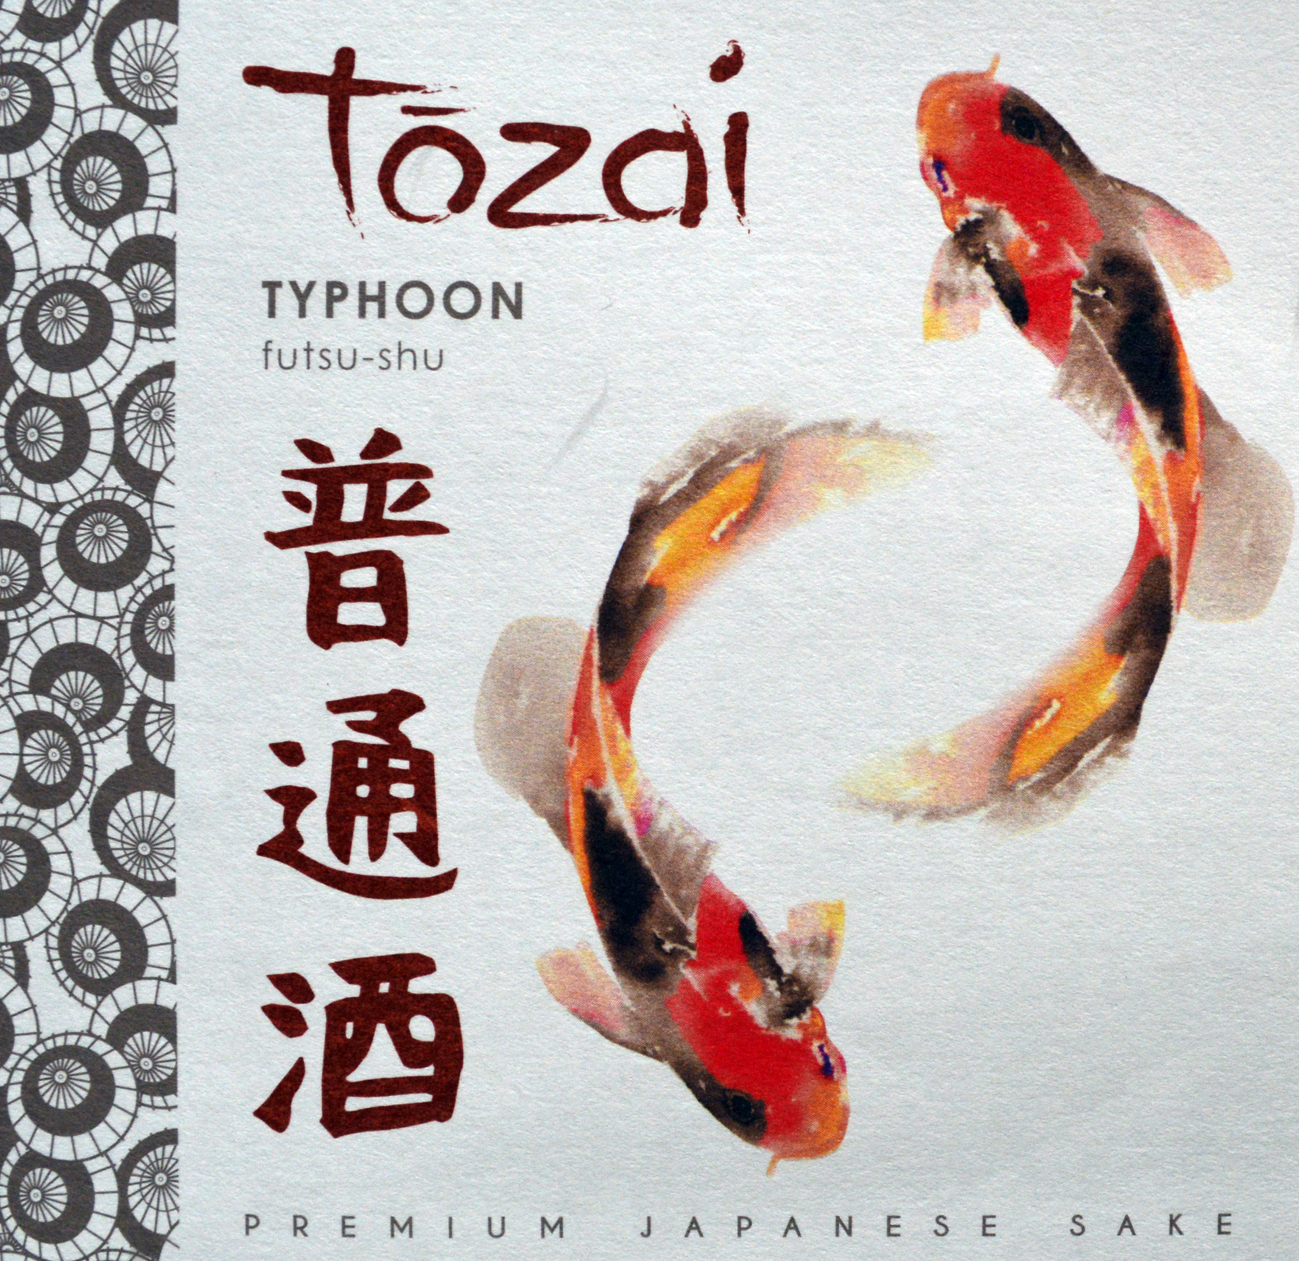 Tozai Sake Typhoon Futsu 720 ml